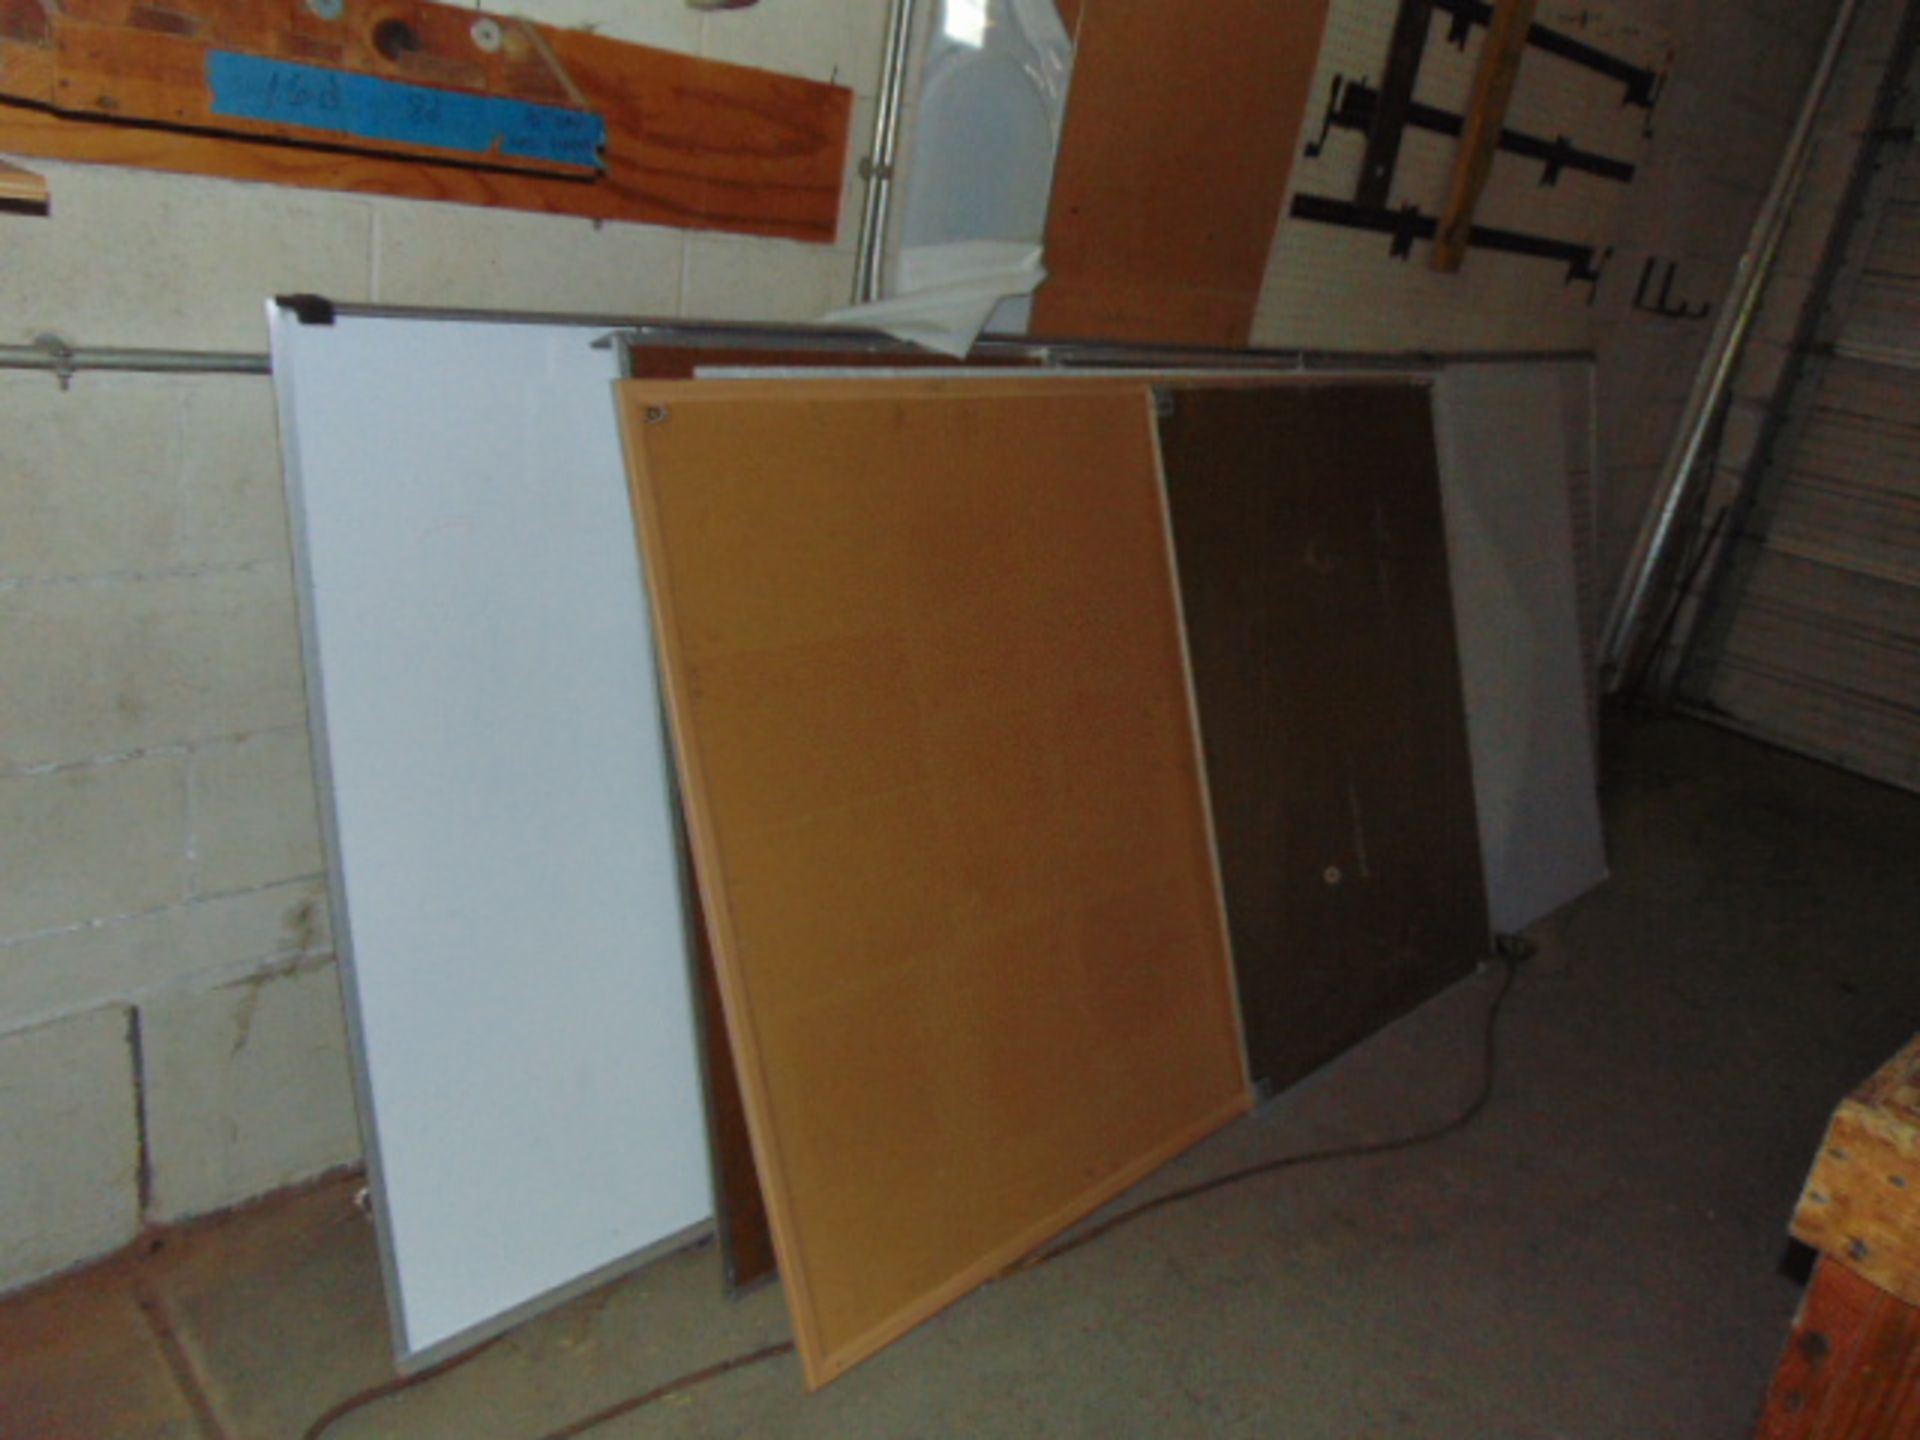 Lot 3028 - LOT CONSISTING OF: (4) cabinets, w/contents, assorted, table, coffee maker, microwave oven, white